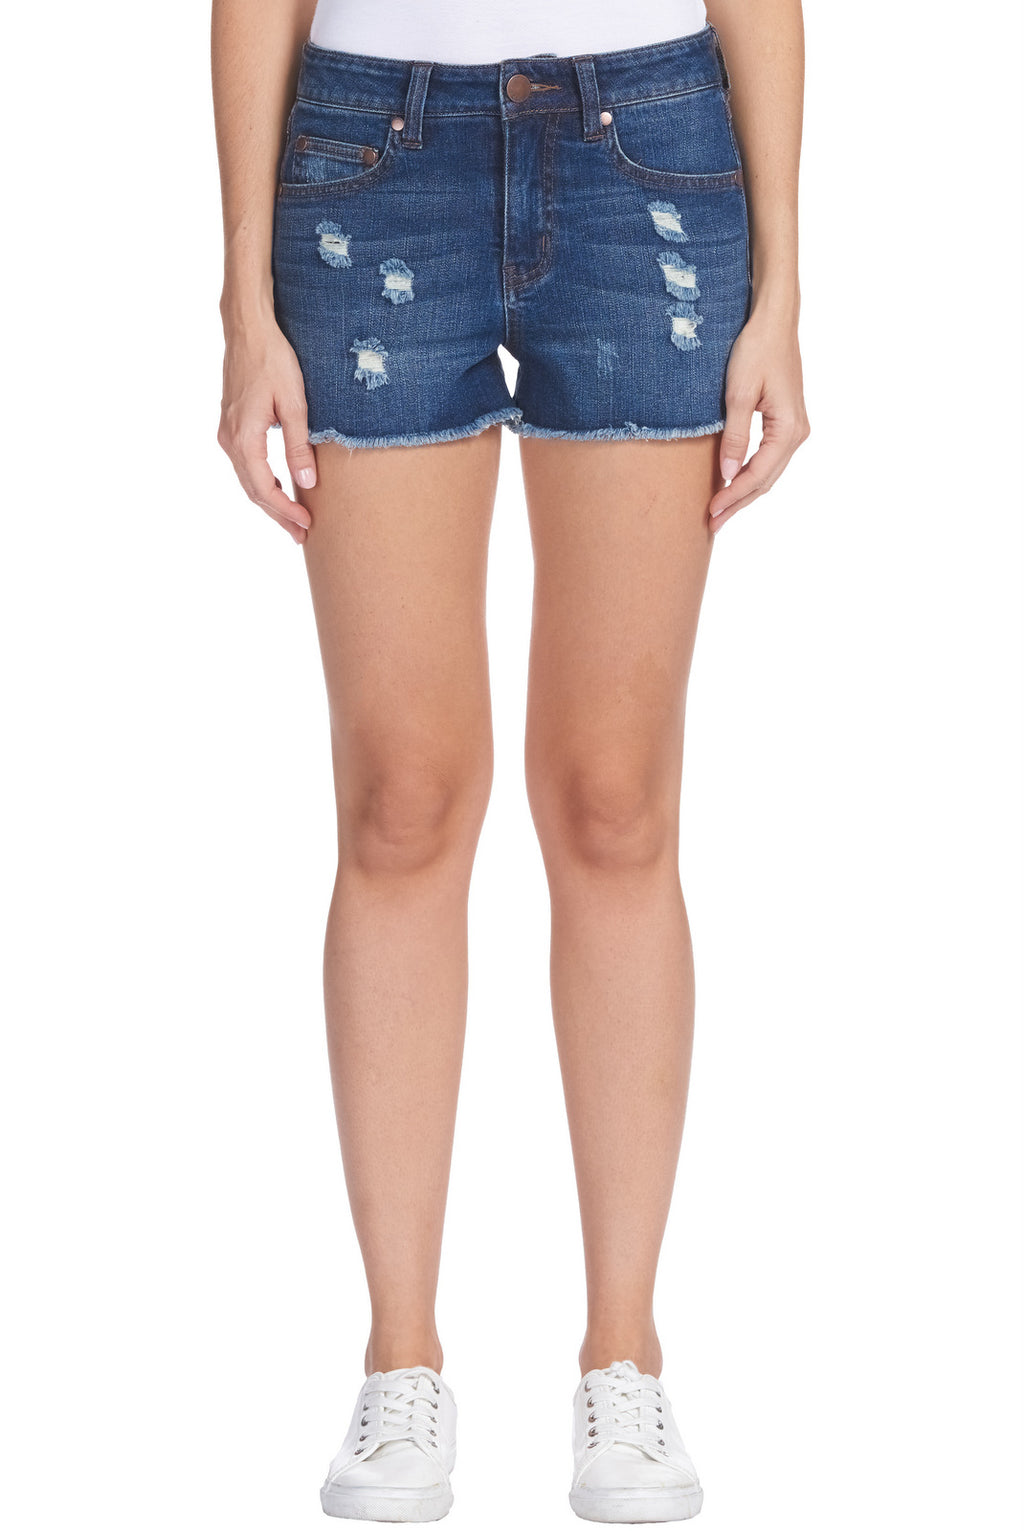 Elan Distressed Shorts